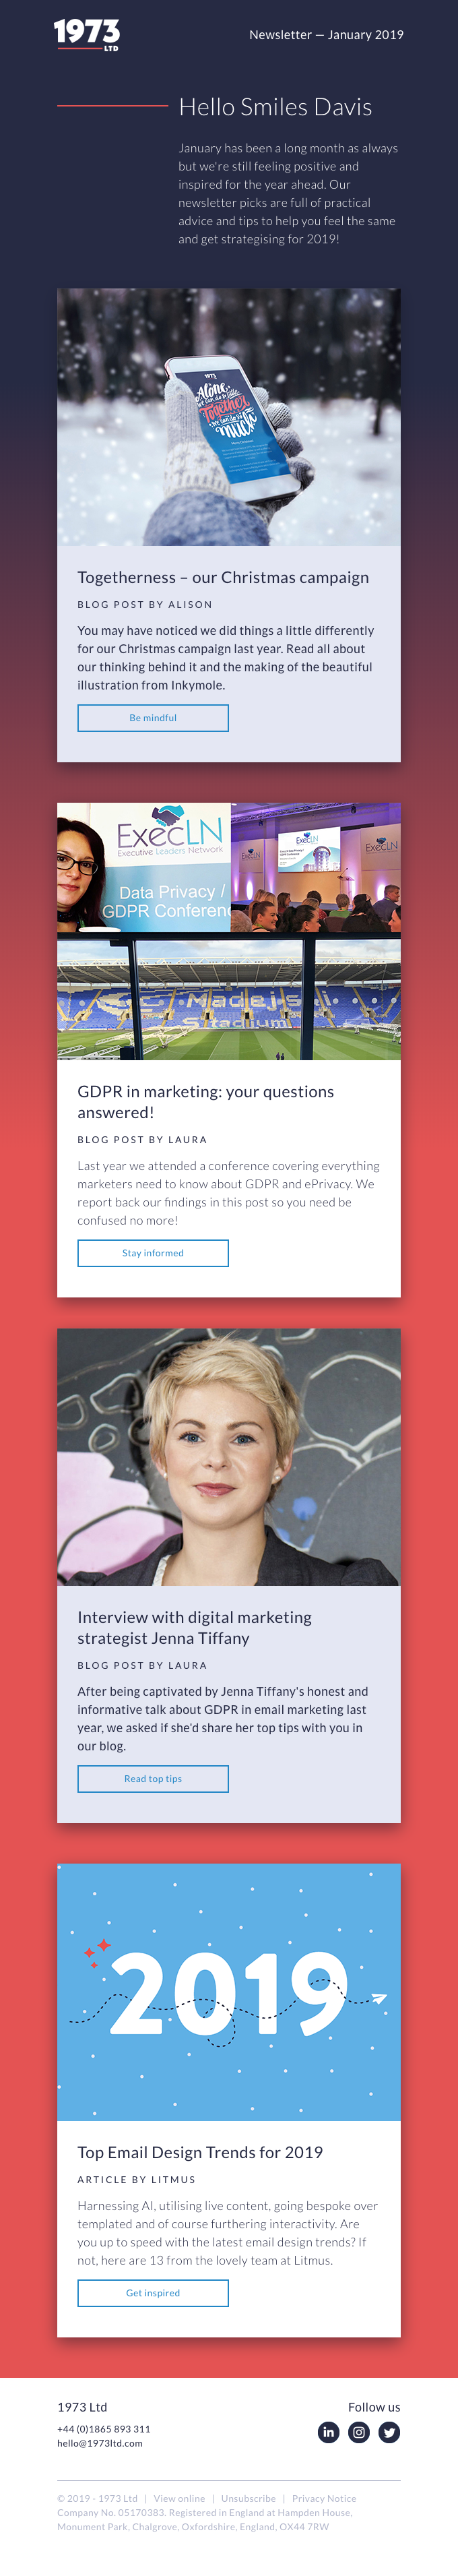 Email marketing tips and trends for 2019